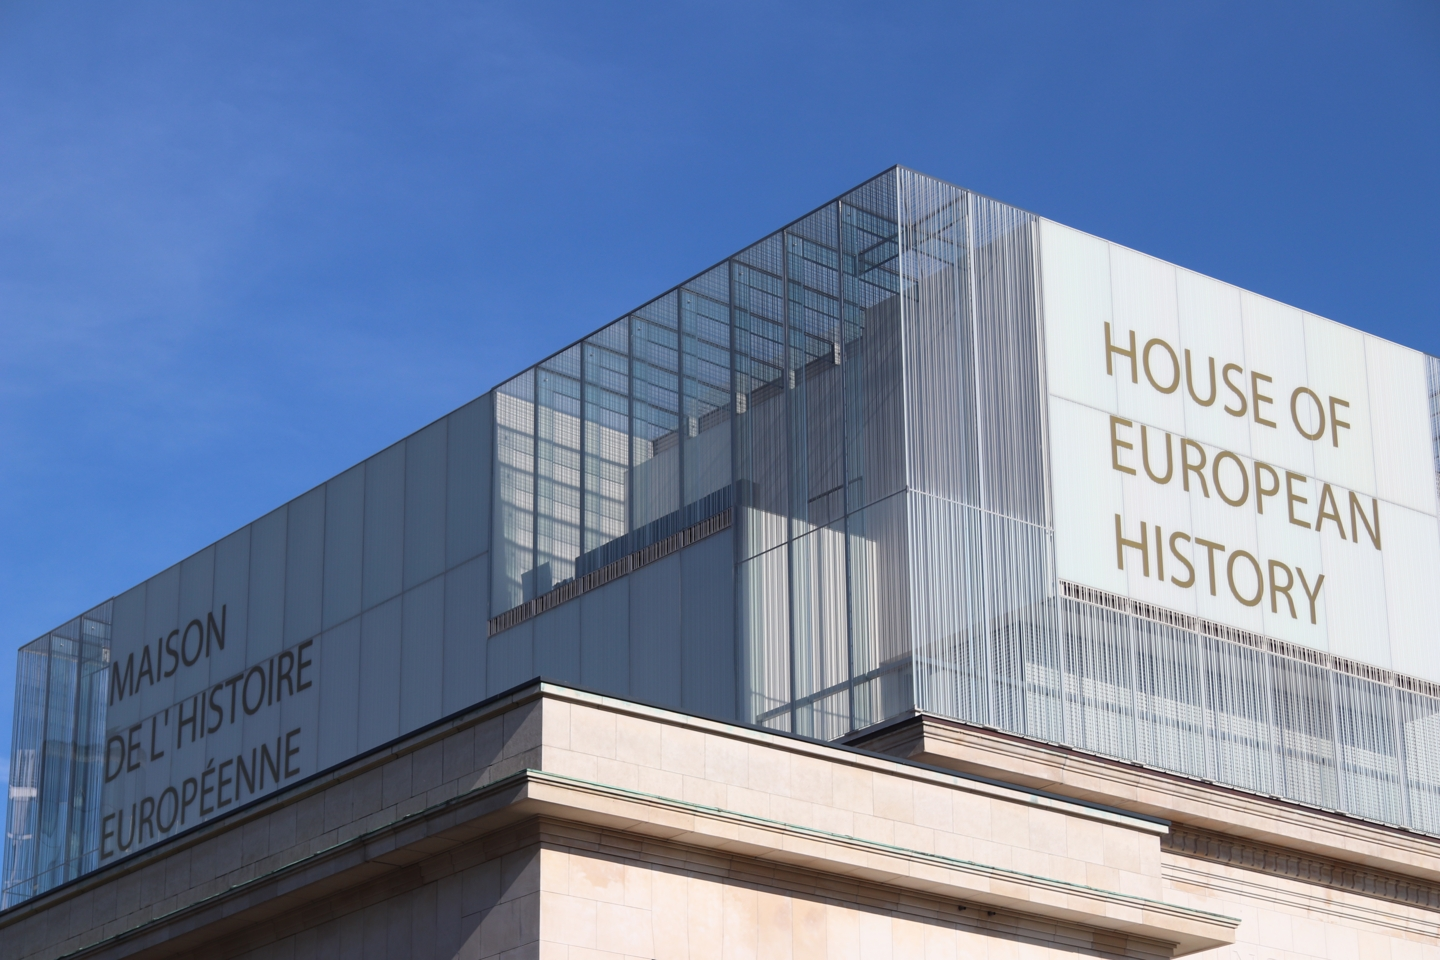 Building of the House of European History from outside.